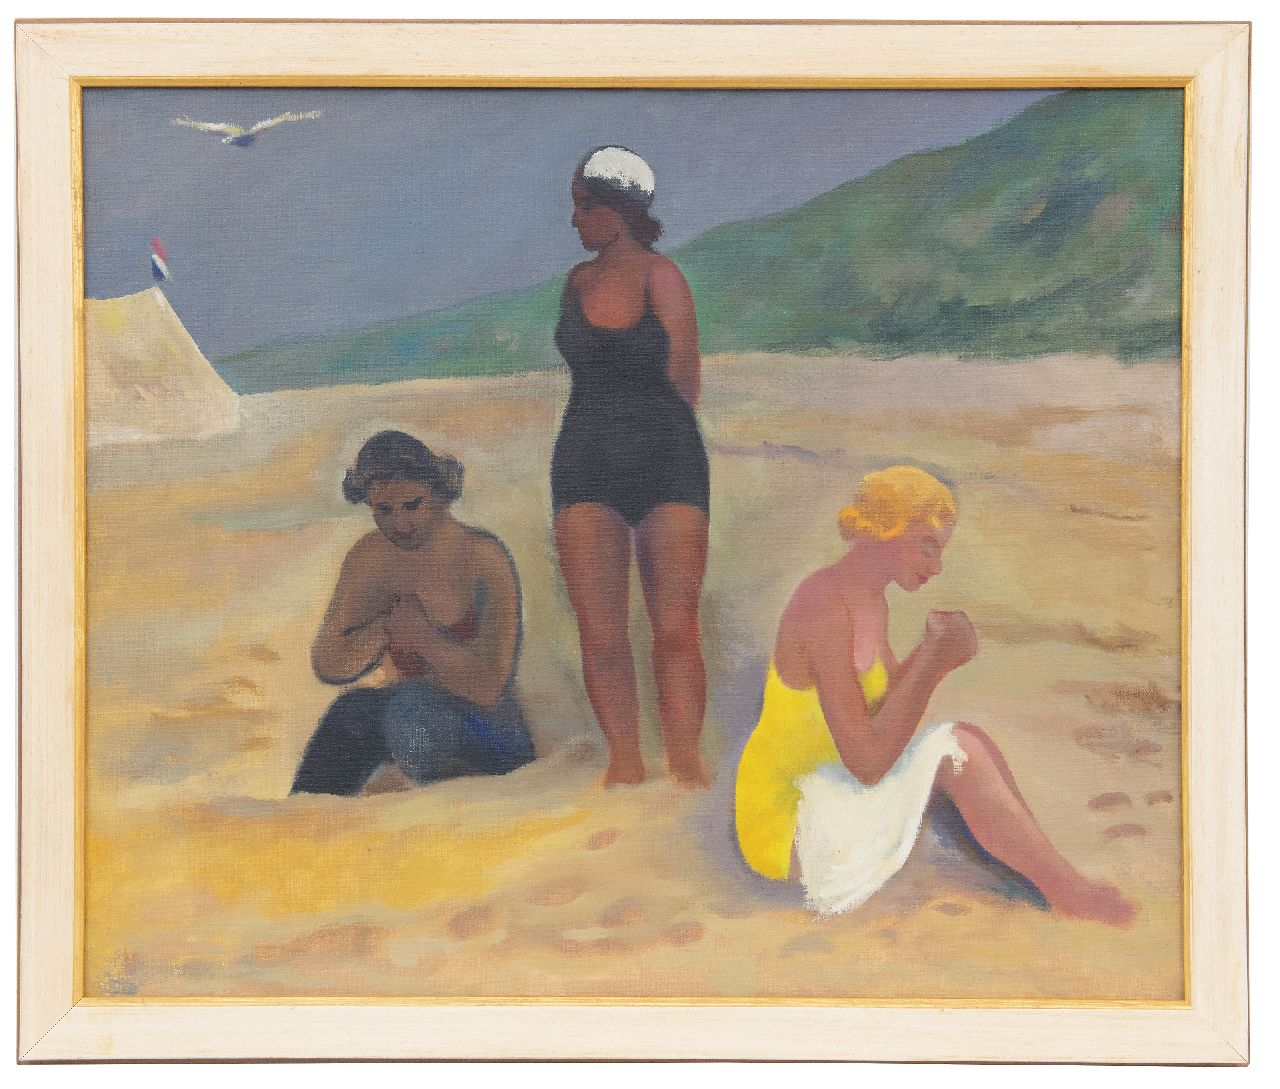 Kleima E.A.  | 'Ekke' Abel Kleima | Paintings offered for sale | 3 ladies on the beach, Schiermonnikoog, oil on canvas 50.4 x 60.5 cm, signed with initials on the stretcher and dated 1939 on the stretcher